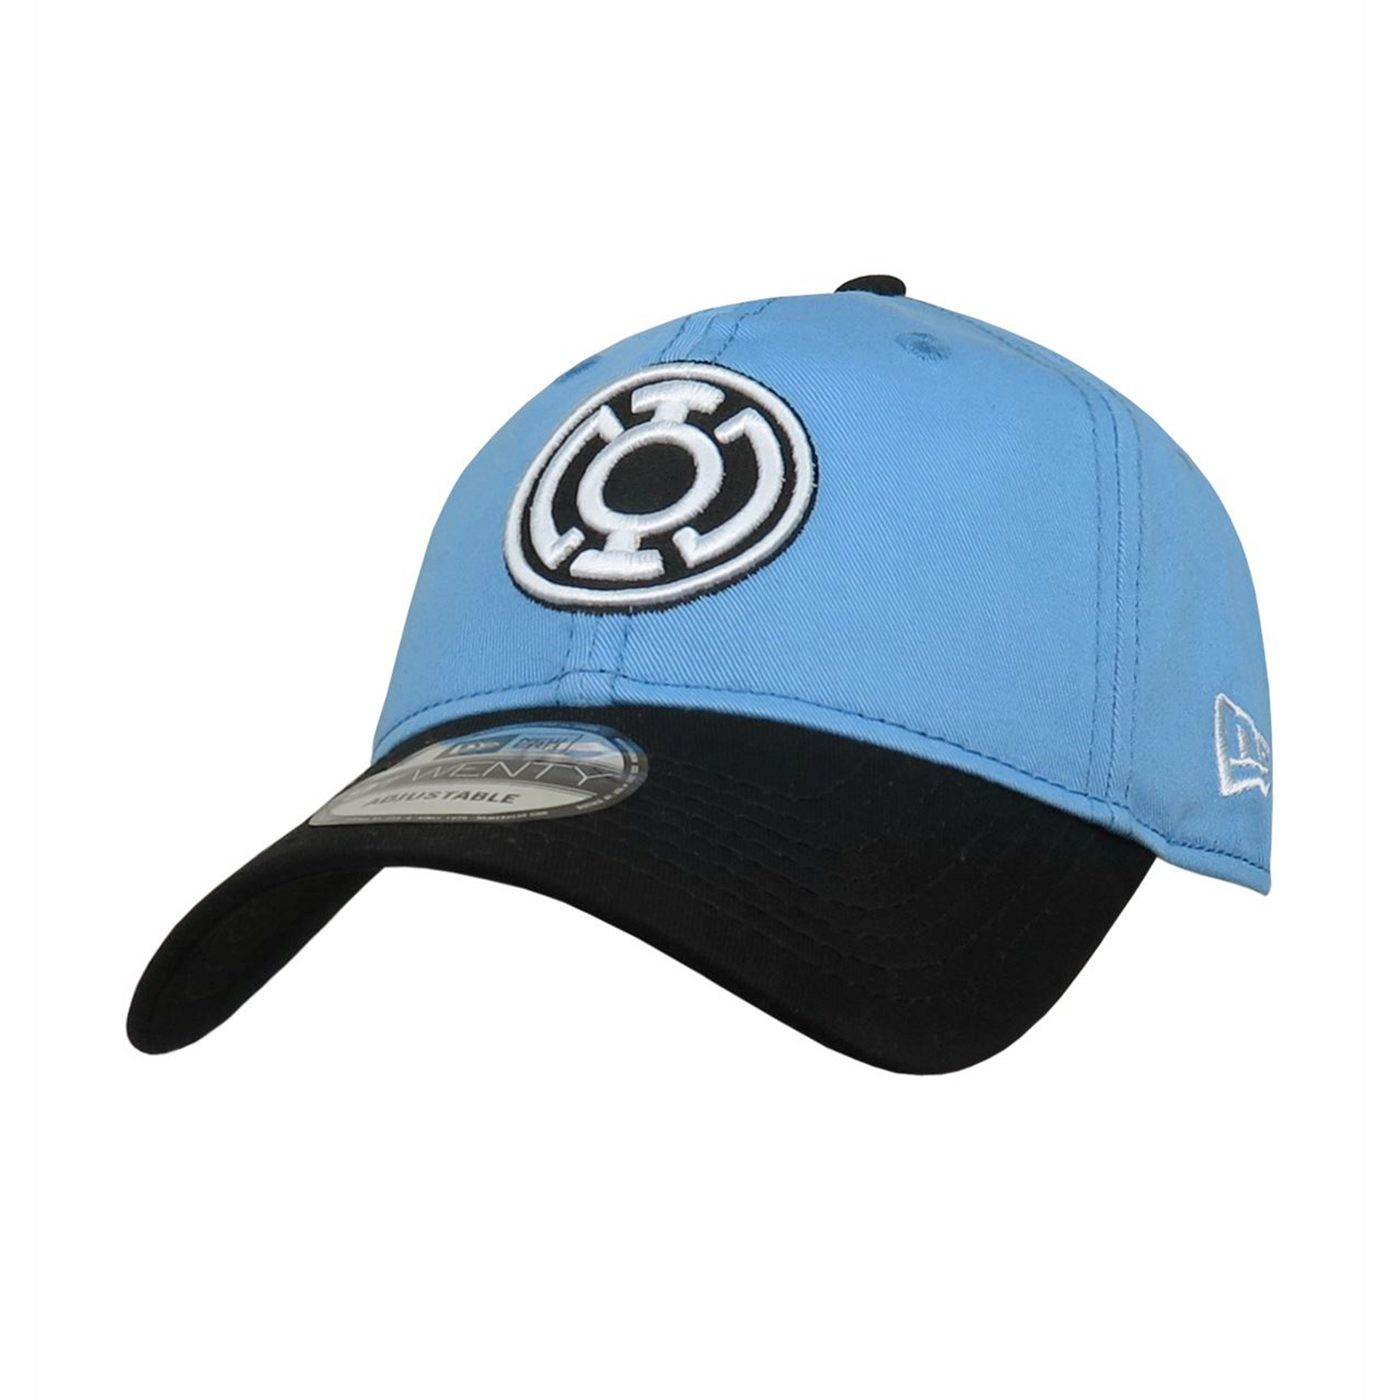 Blue Lantern Symbol 9Twenty Adjustable Hat